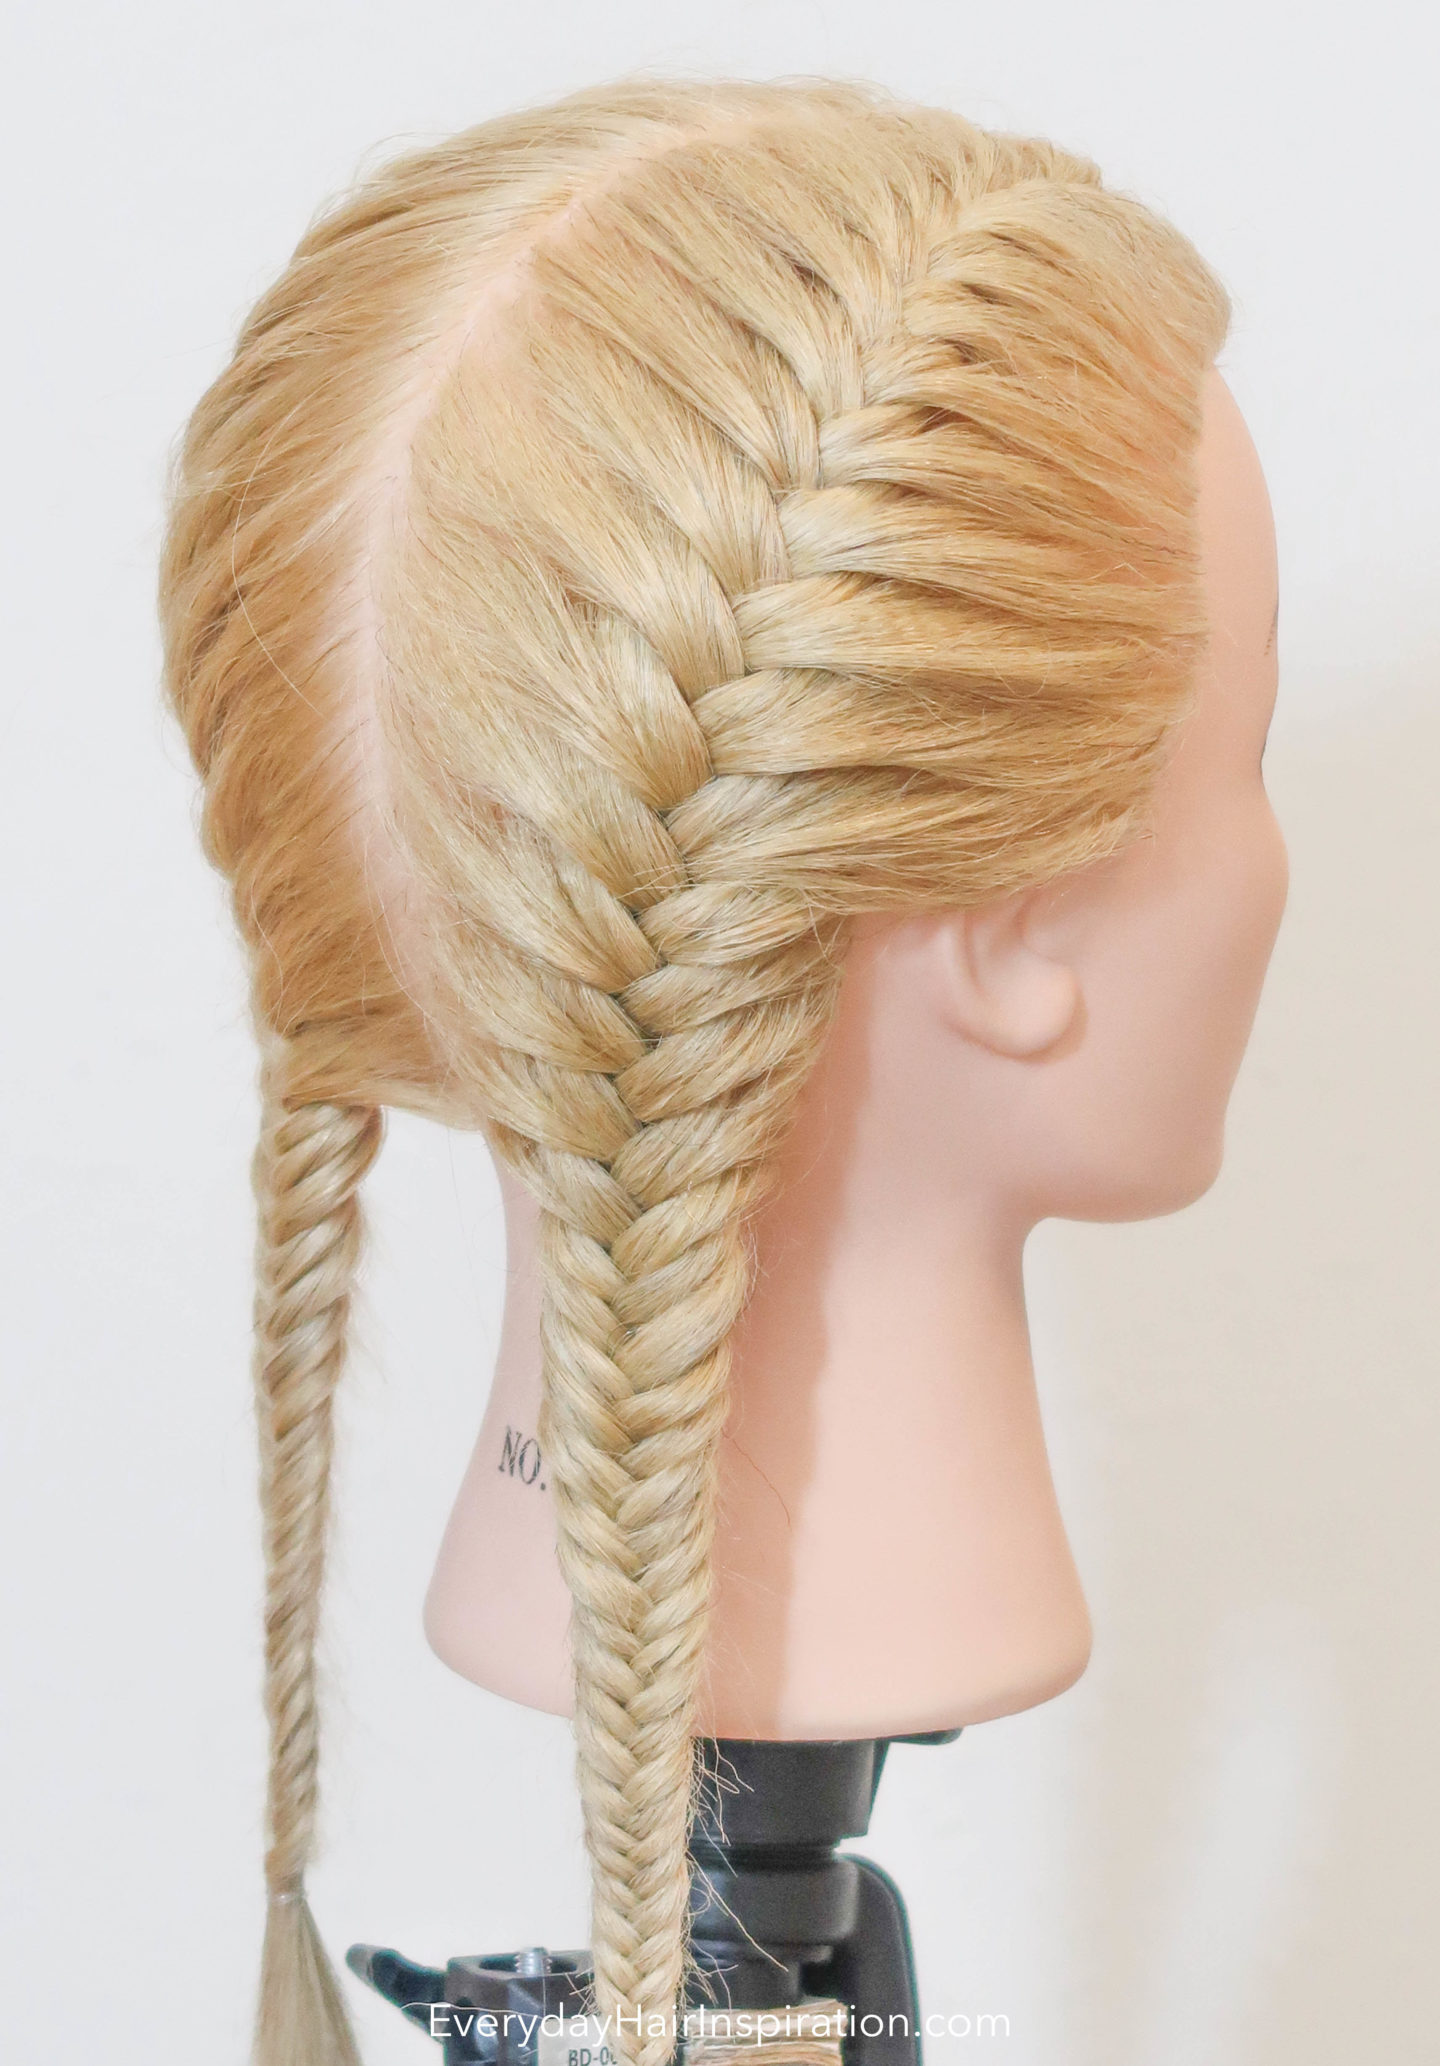 Blonde hairdresser doll with double french fishtails